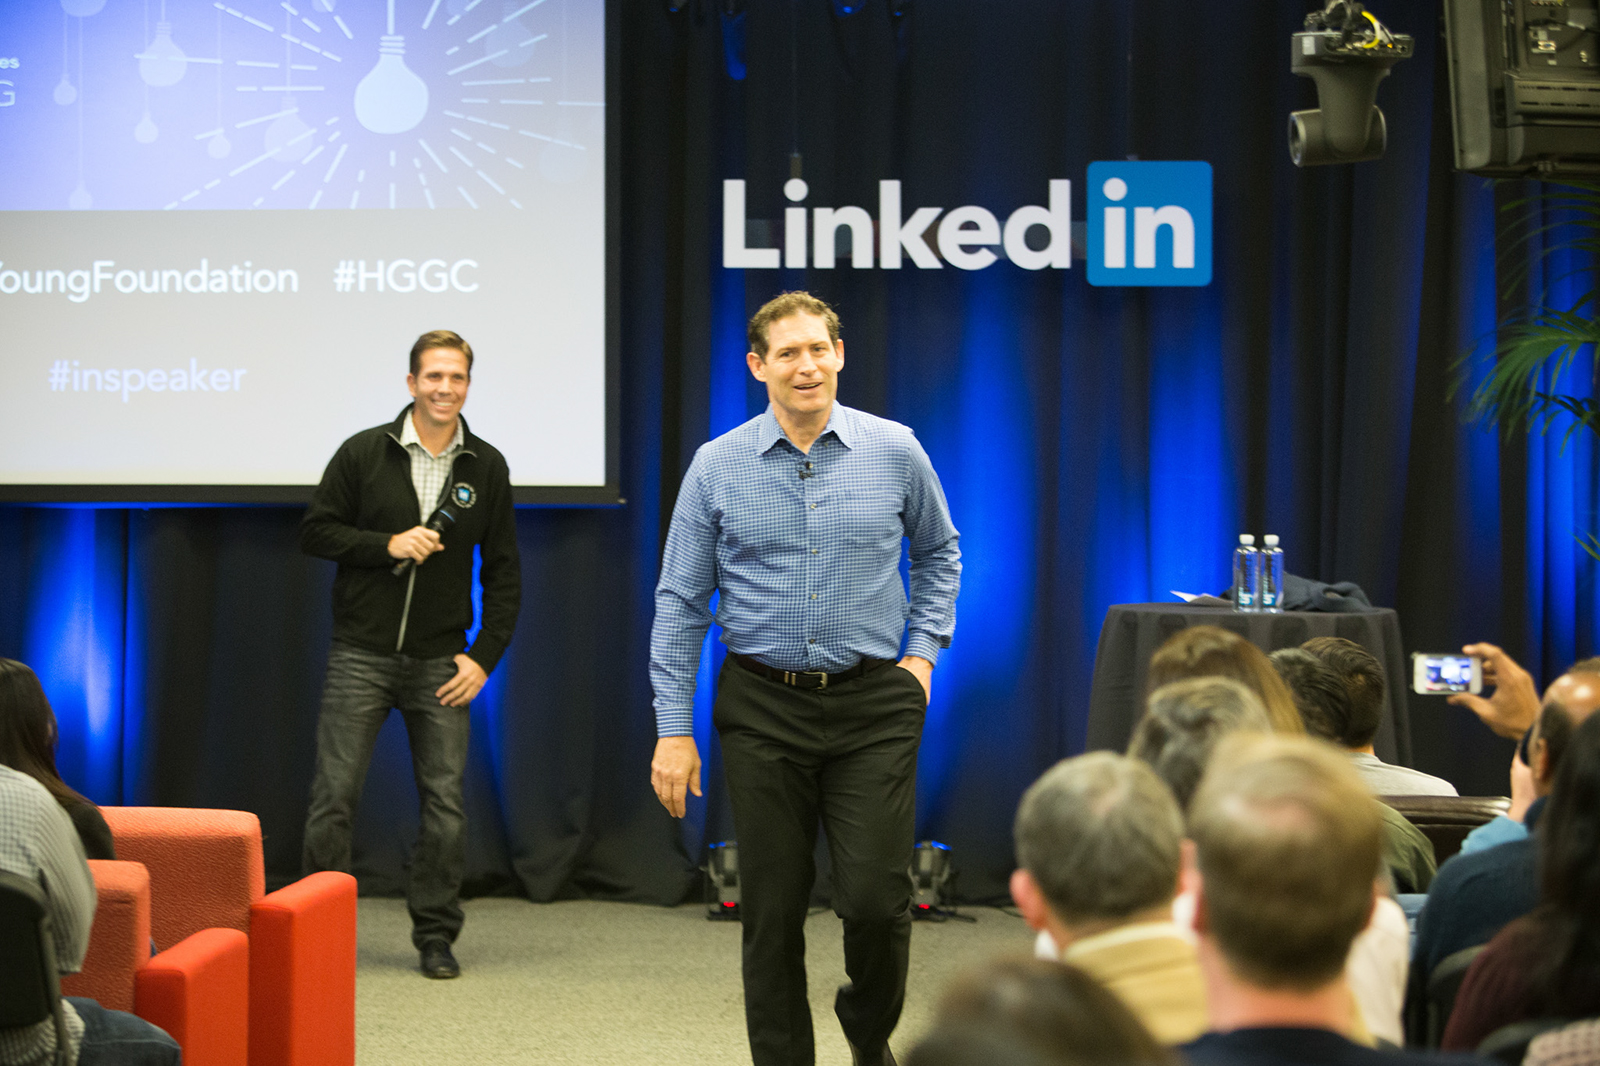 Steve Young at LinkedIn